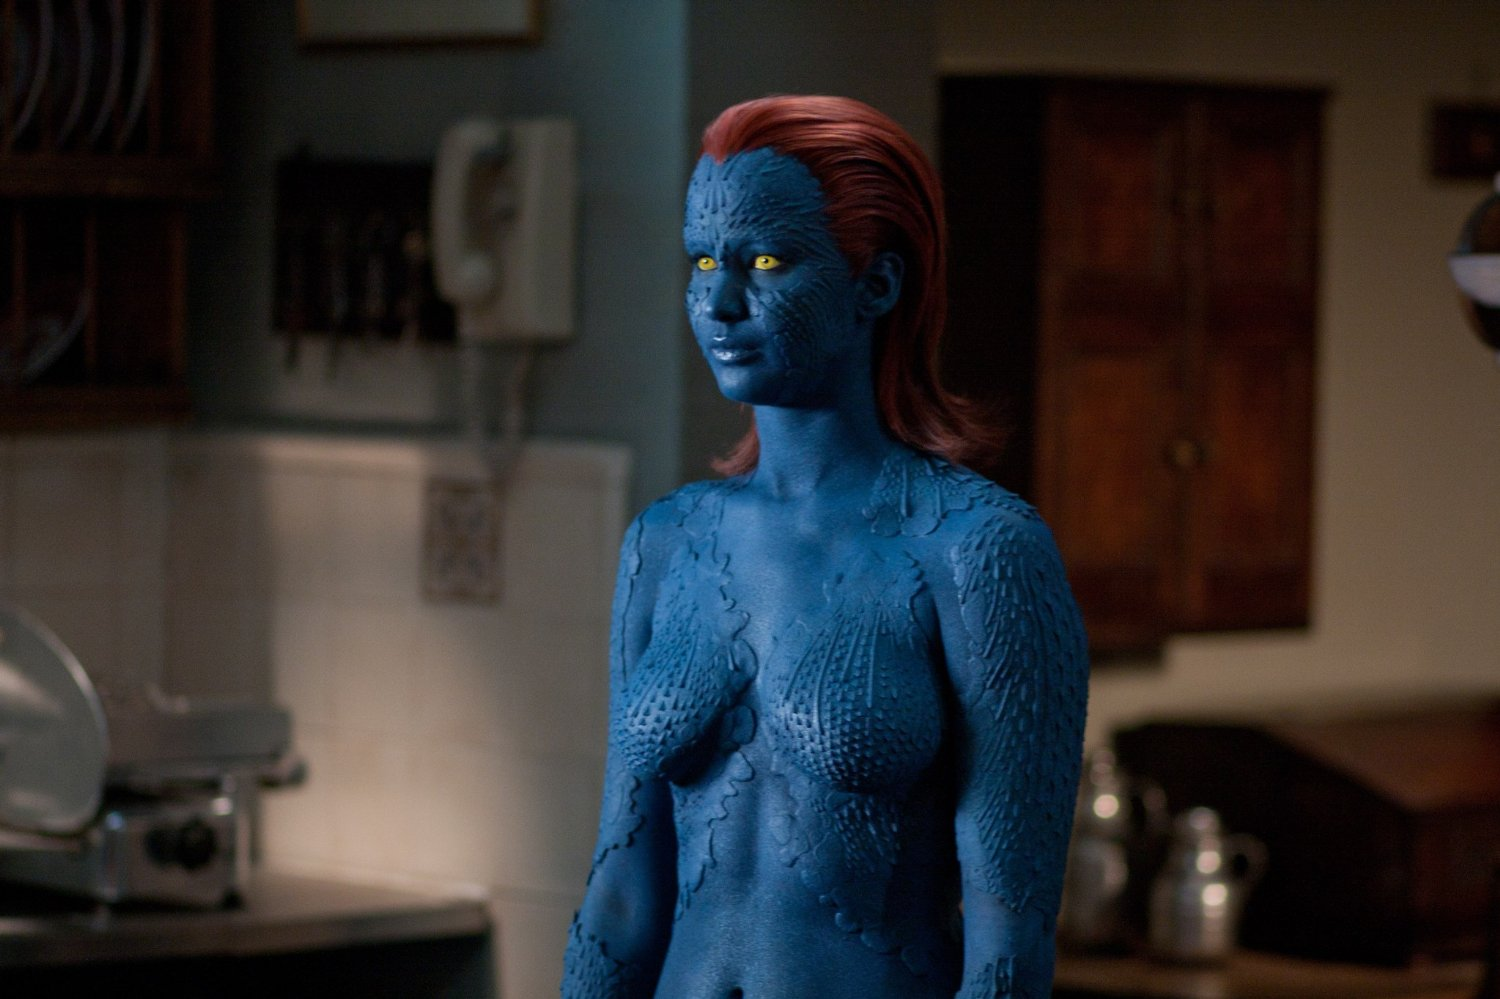 Jennifer Lawrence as the young Mystique in X: First Class (2011)